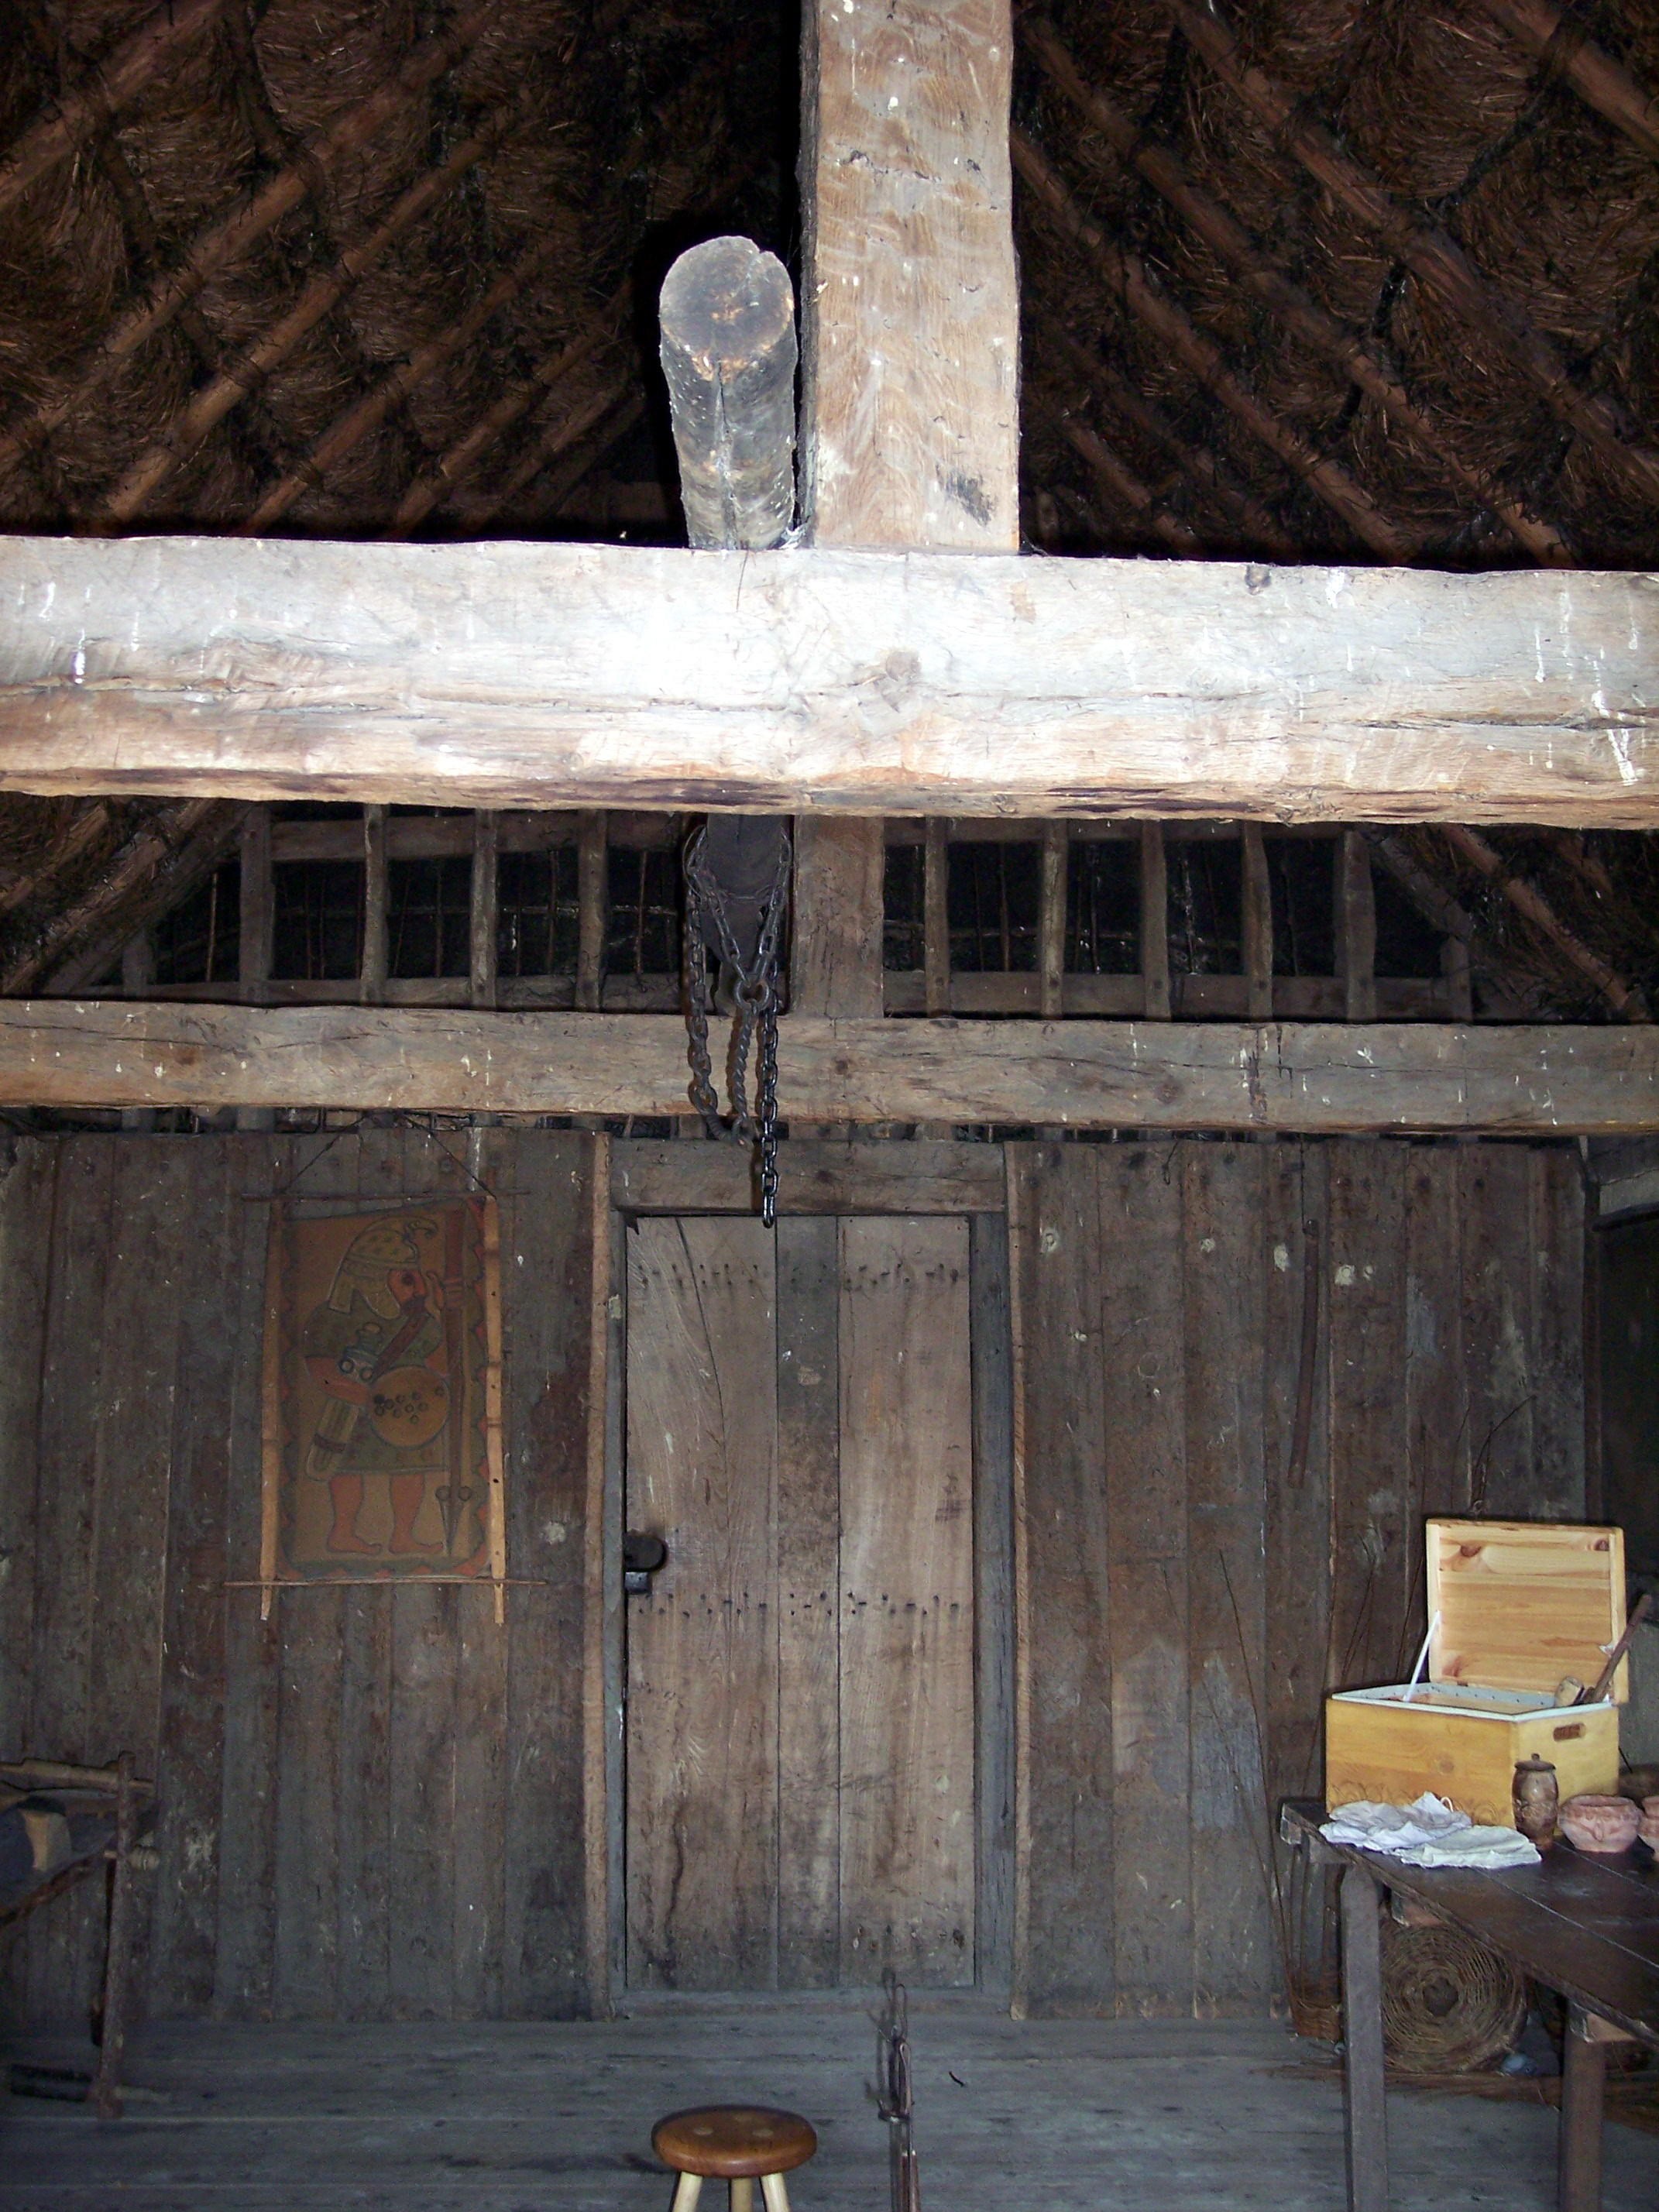 There is no direct evidence for a building like this at West Stow, but it is based upon actual buildings from the end of this period. The workshop was built in 1991 to meet some present day needs at the site. It has an oak framework with infill of wattle and clay.